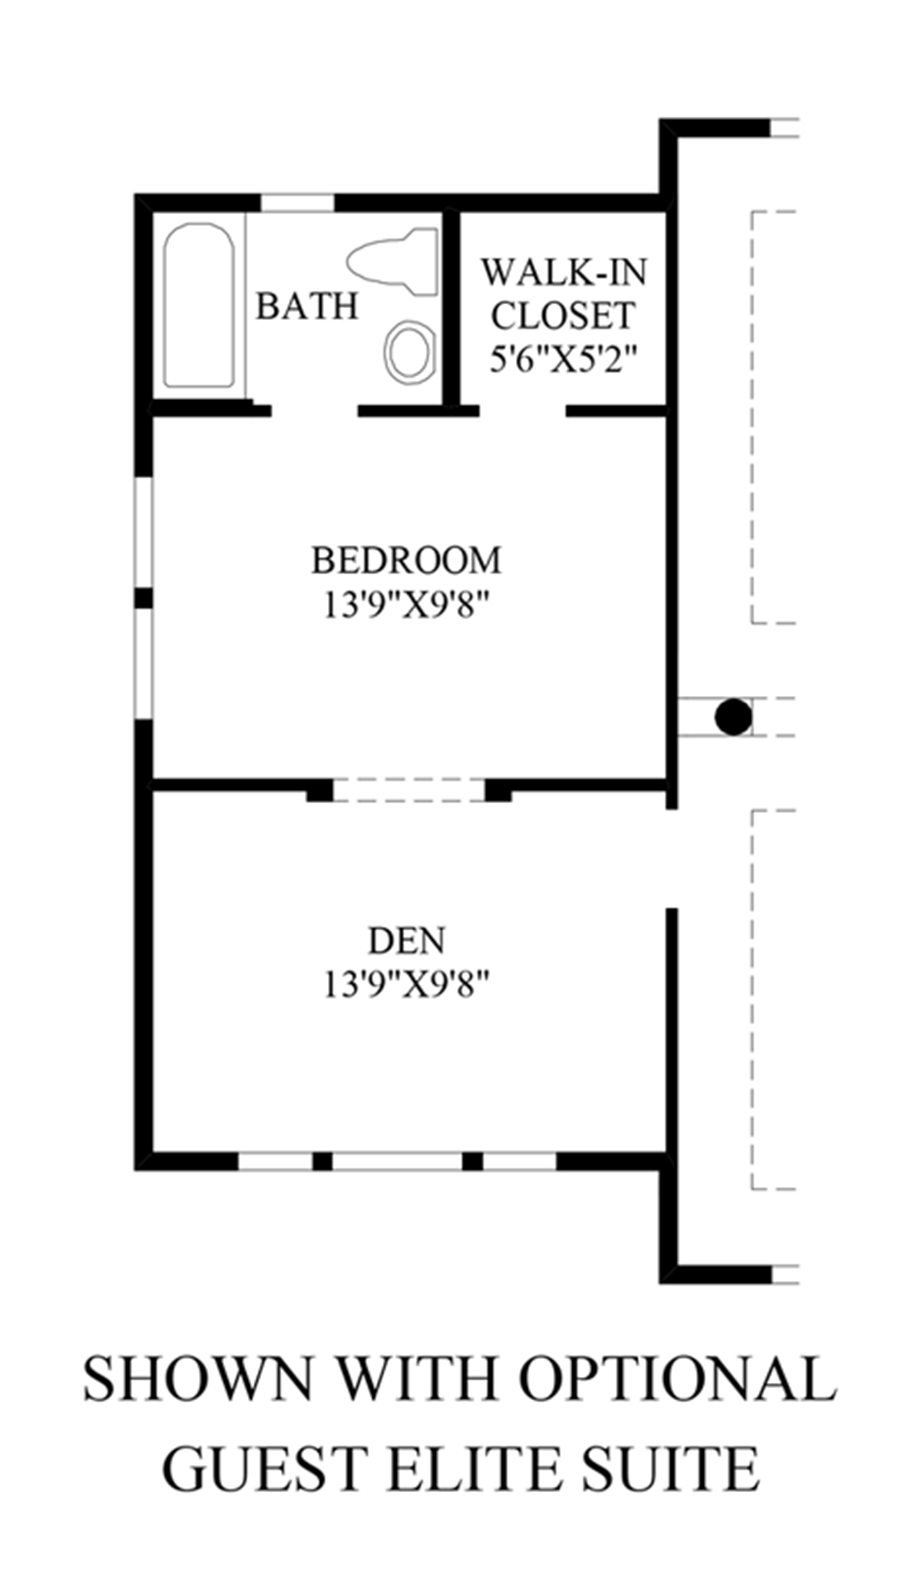 Optional Guest Suite Floor Plan